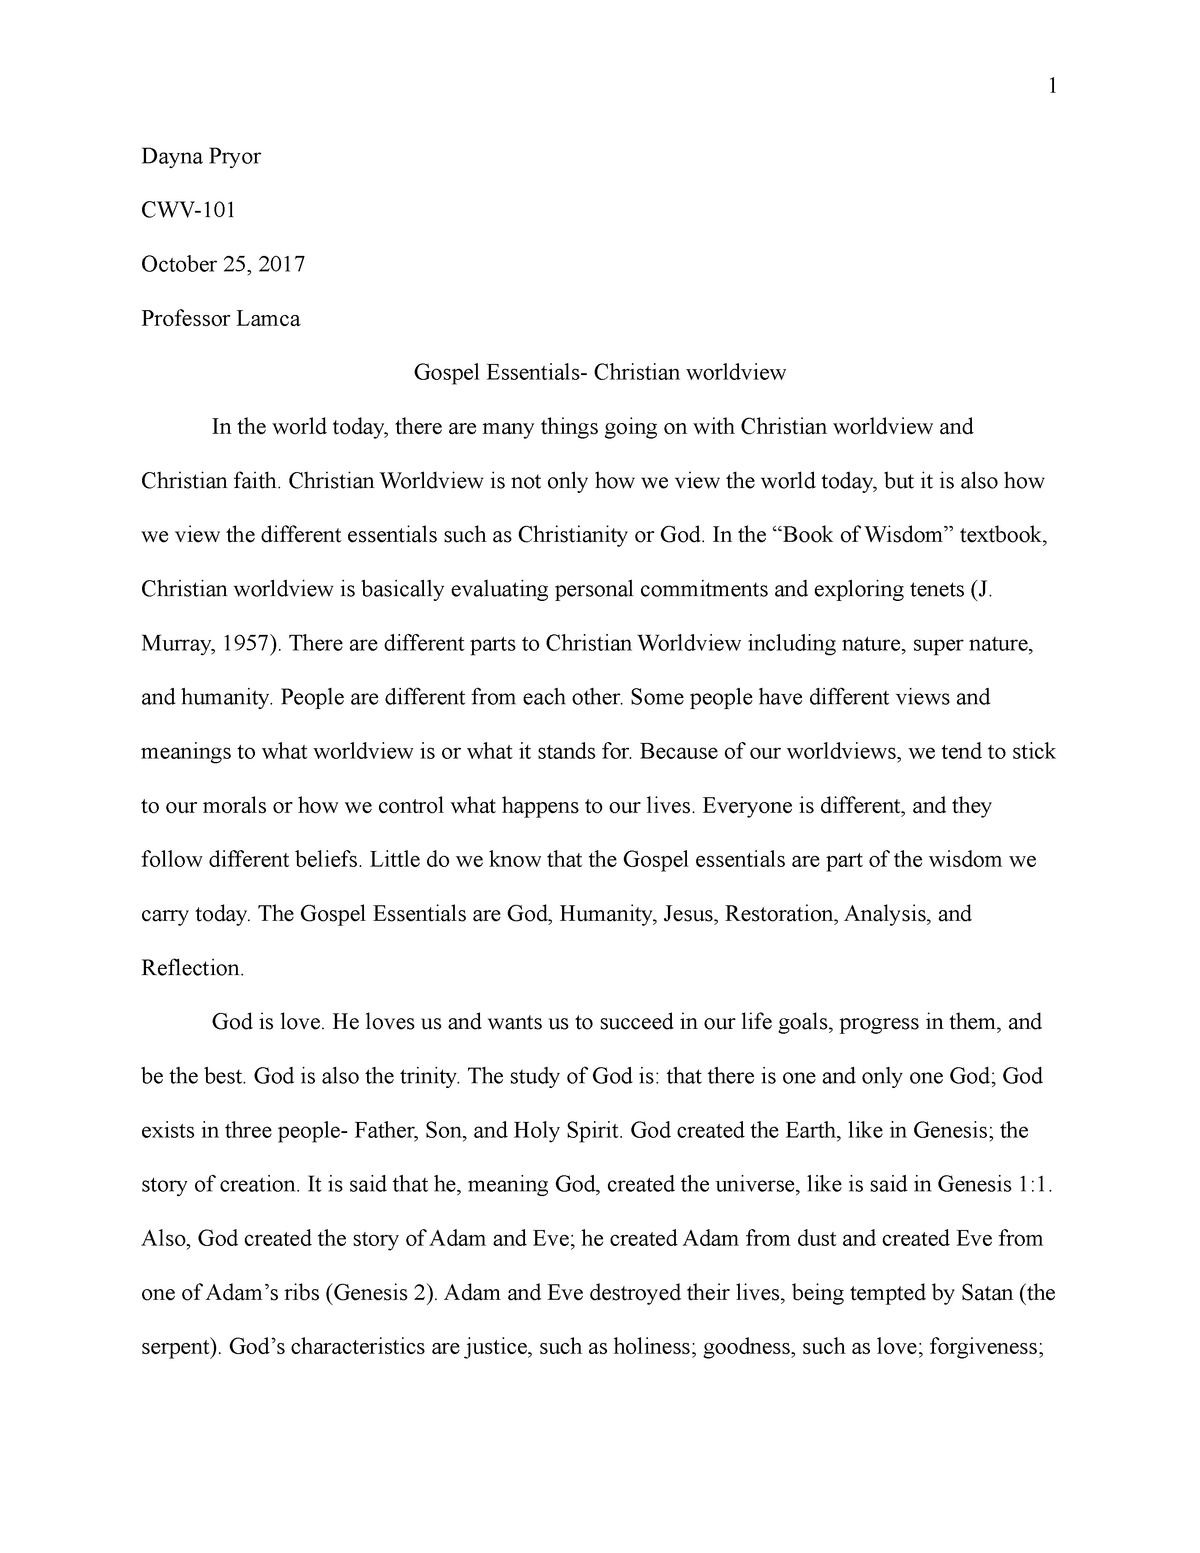 Check Out Our Christian Worldview Essay